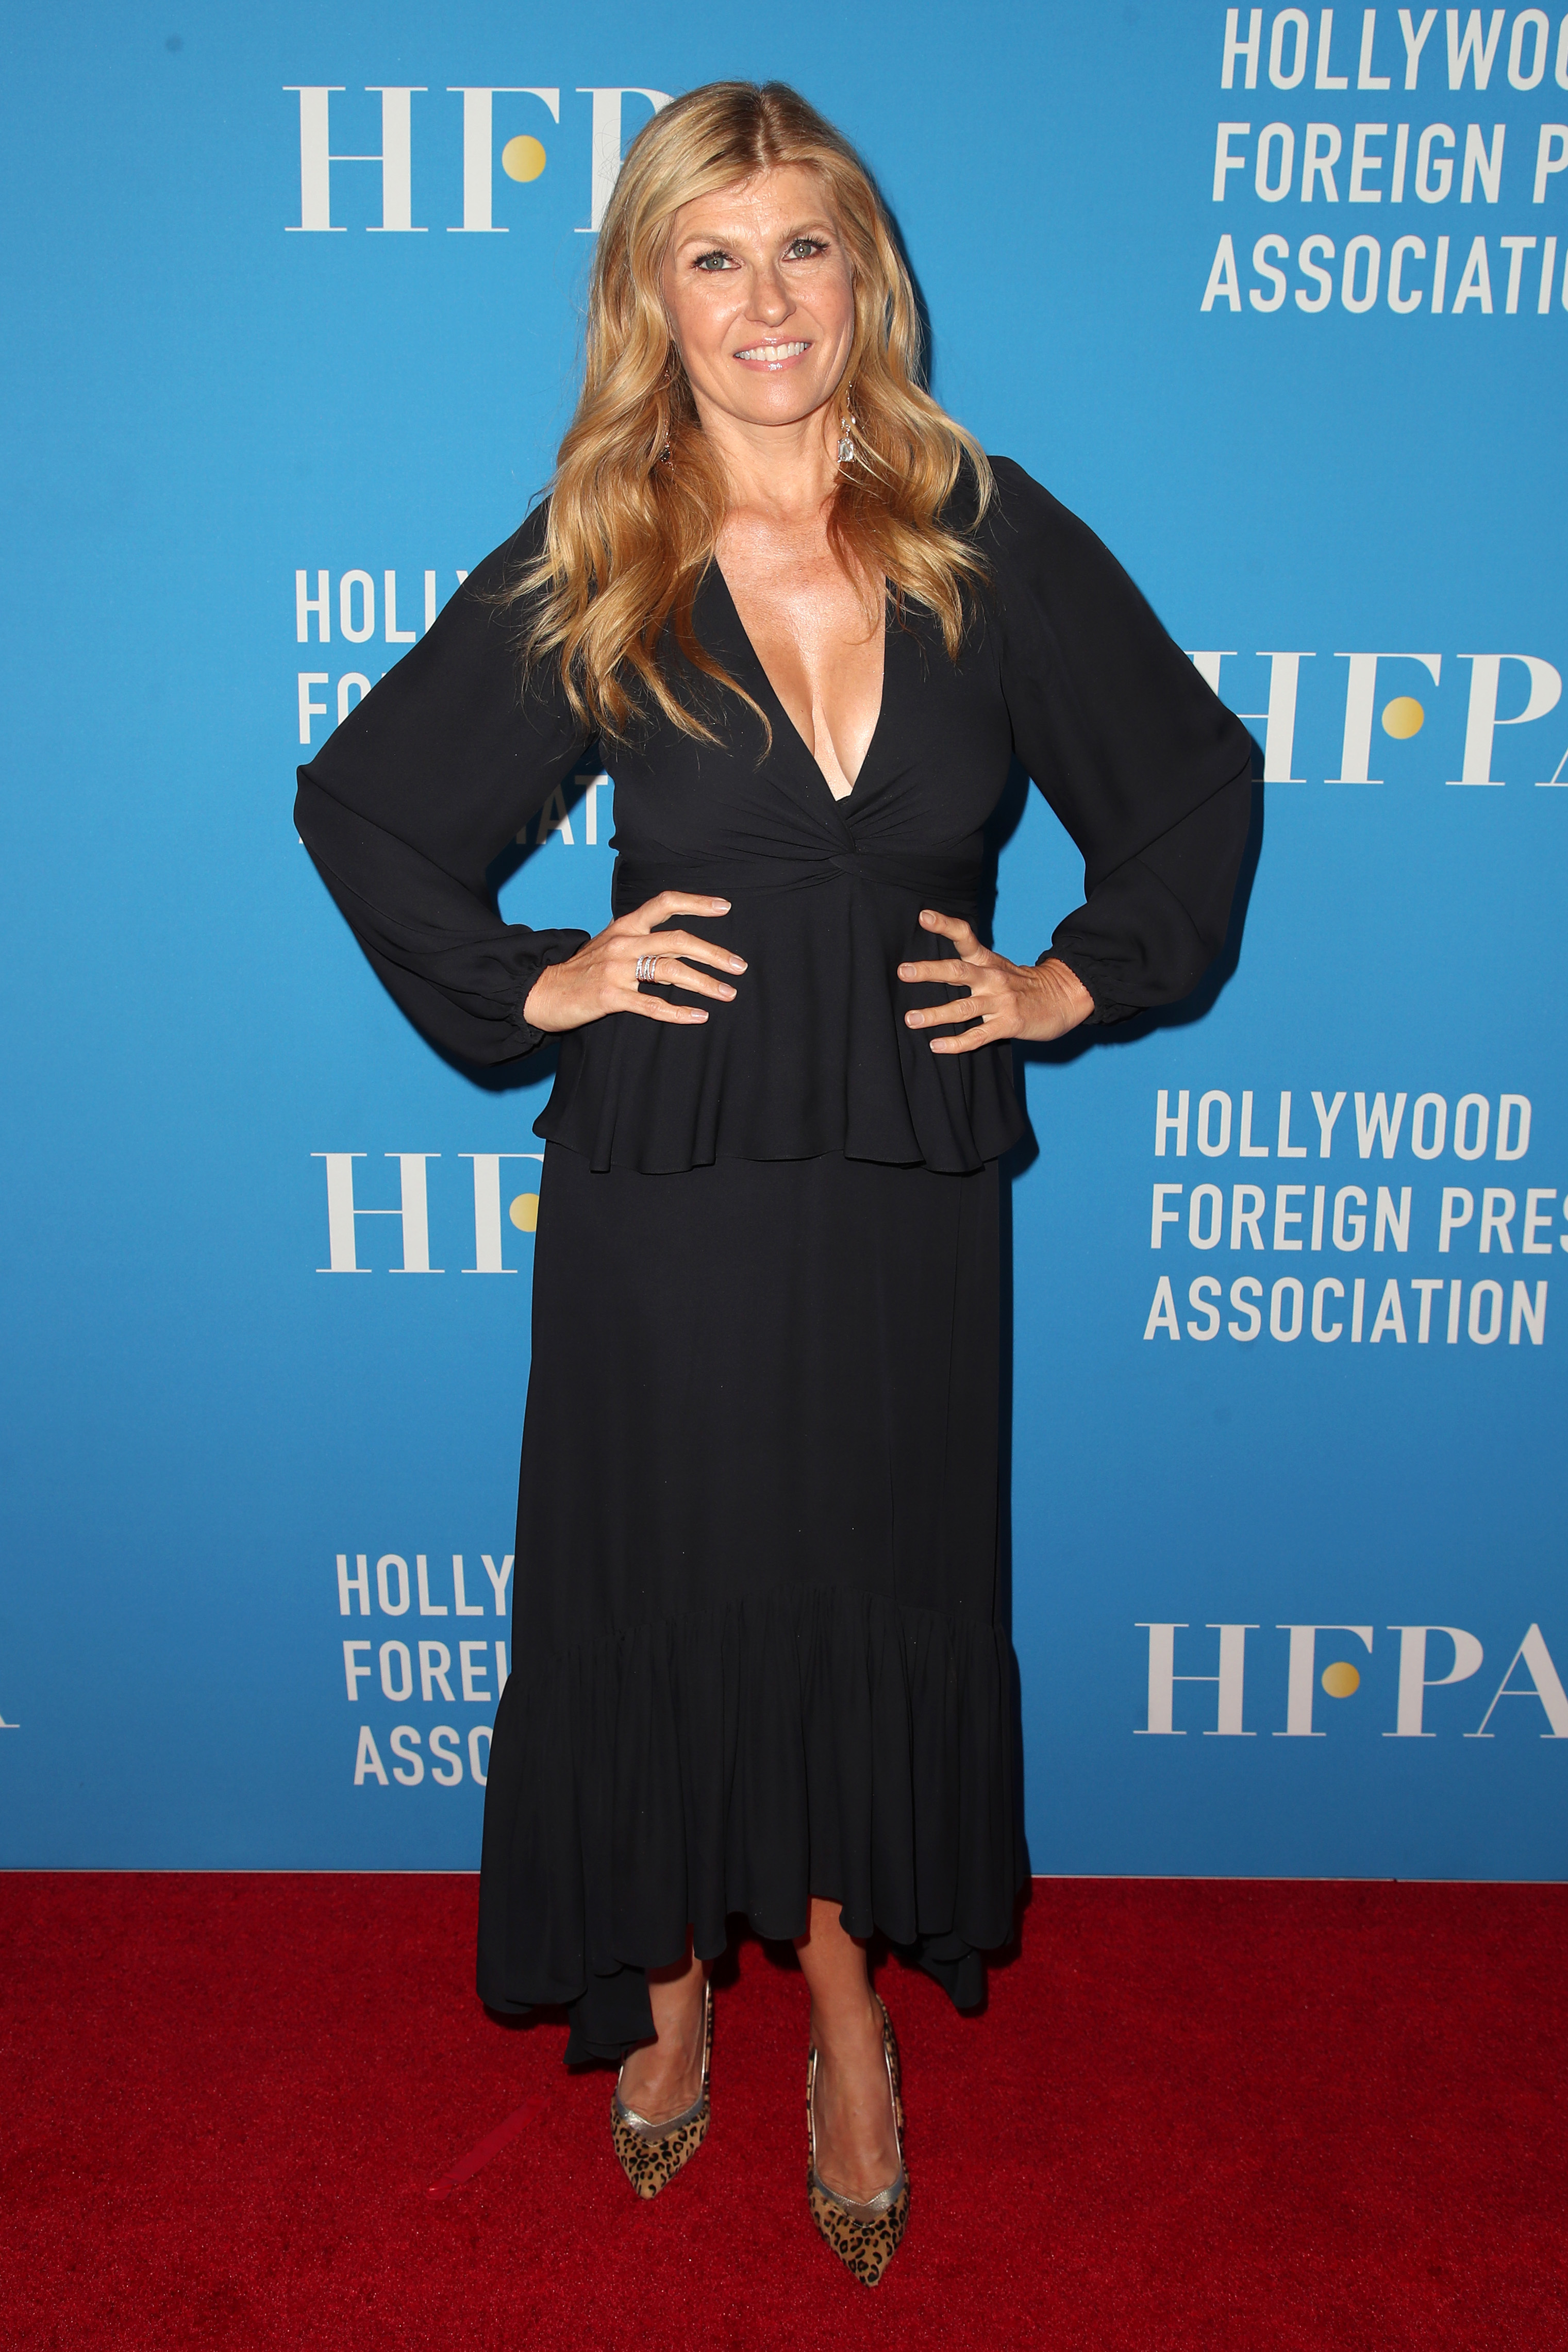 Connie Britton attends the Hollywood Foreign Press Association's Annual Grants Banquet in Los Angeles on Aug. 9, 2018.